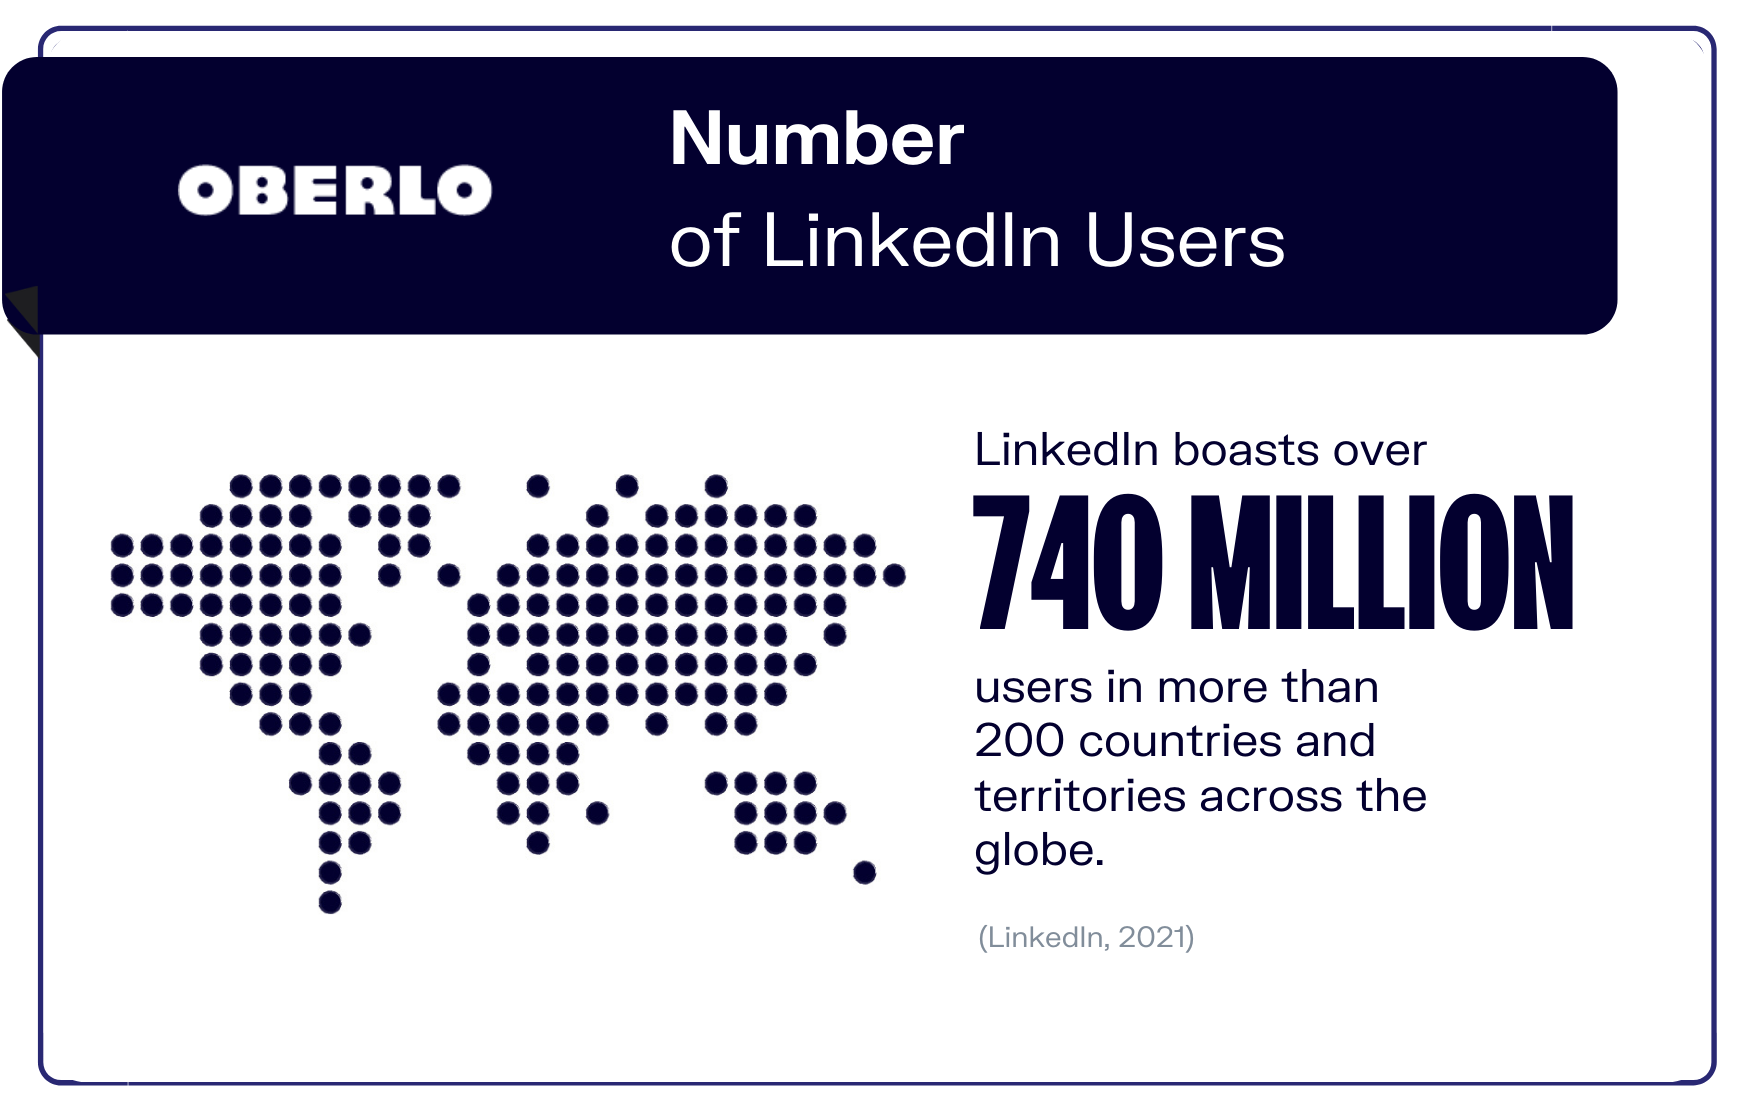 Number of LinkedIn Users graphic